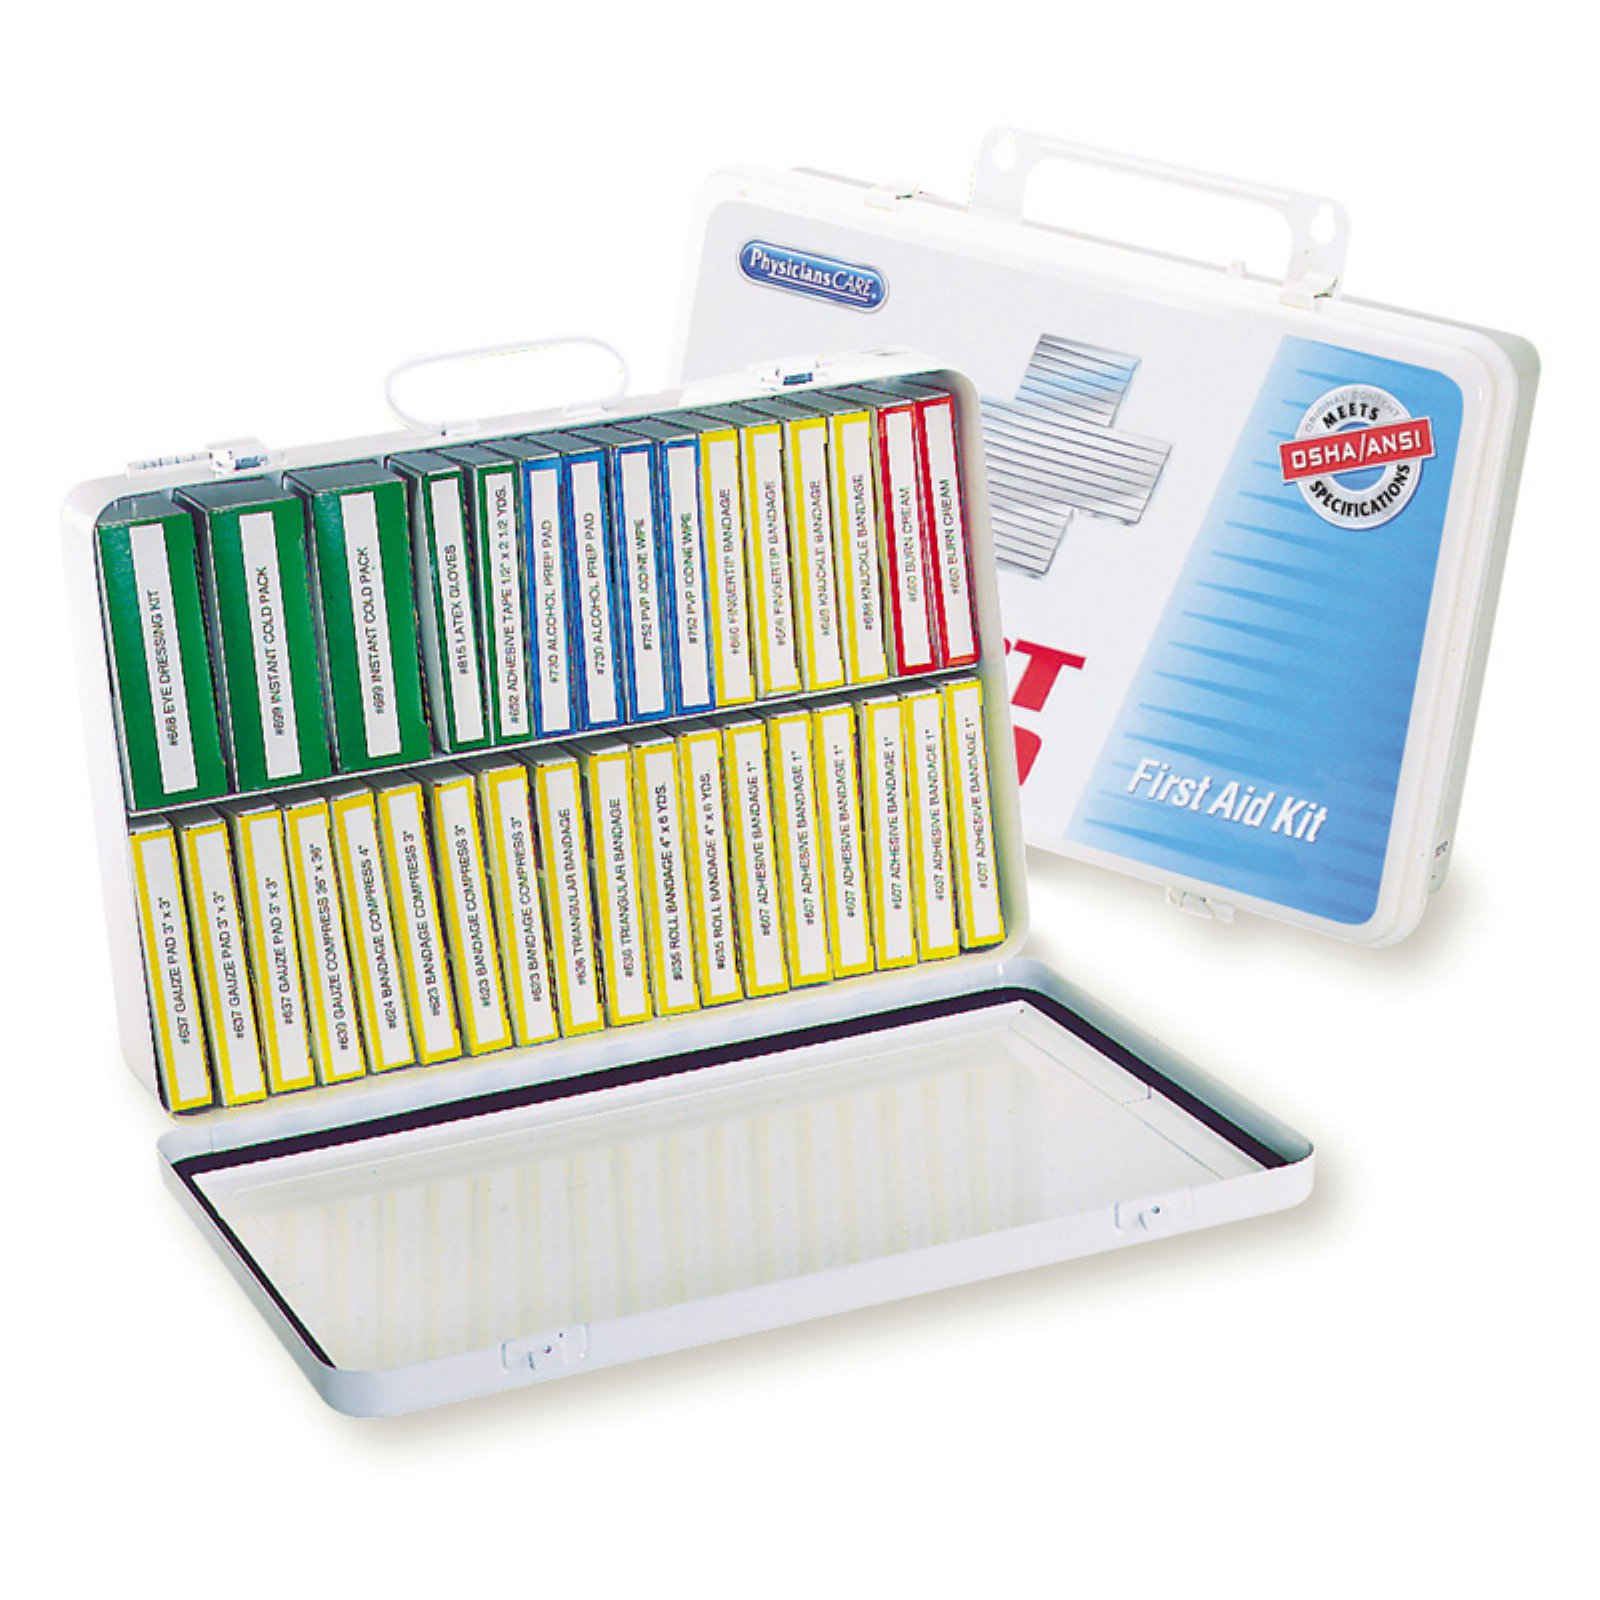 Physicians Care 36 Unit First Aid Kit